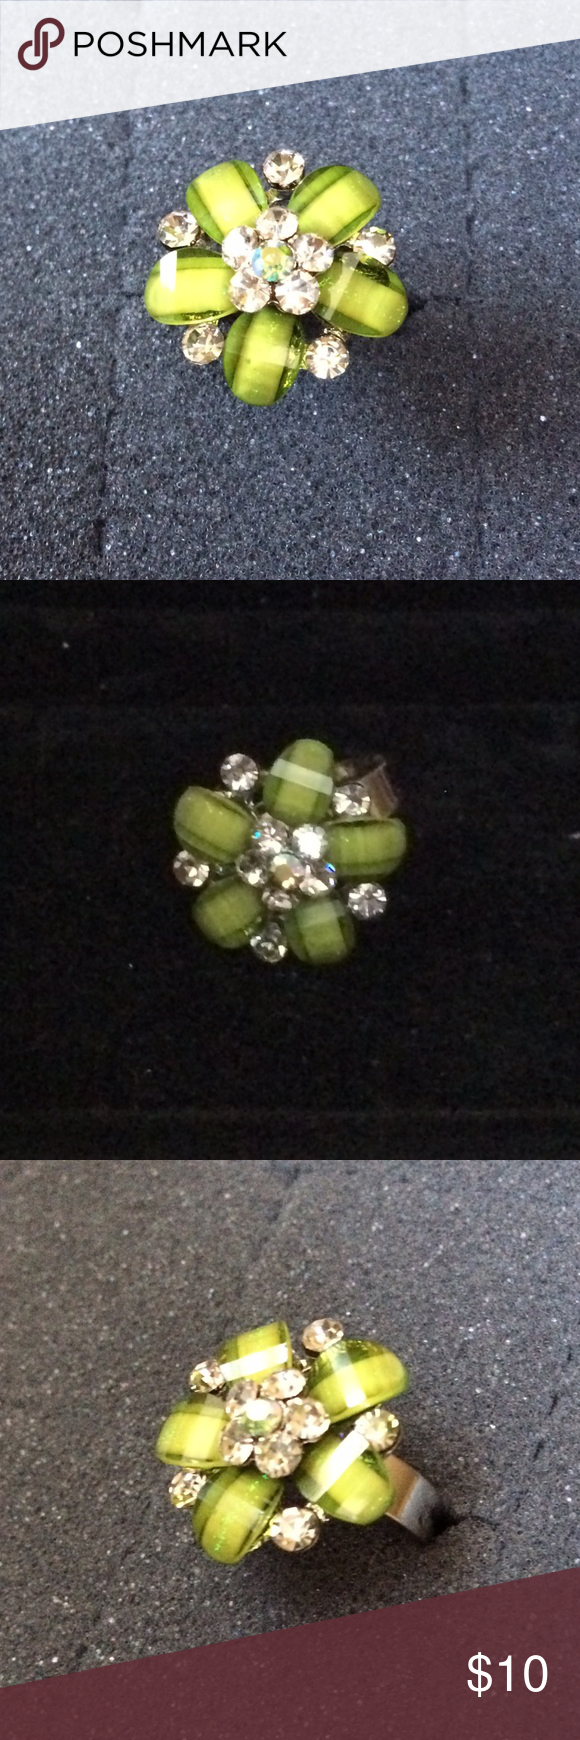 ✨NEW✨Cluster Flower Ring 💍 💍Lime green colored cluster flower ring 💍Adjustable band ⭐️Reasonable offers will be considered 🚫No lowball offers please! 🙅No trades 💰Bundle and save! Jewelry Rings